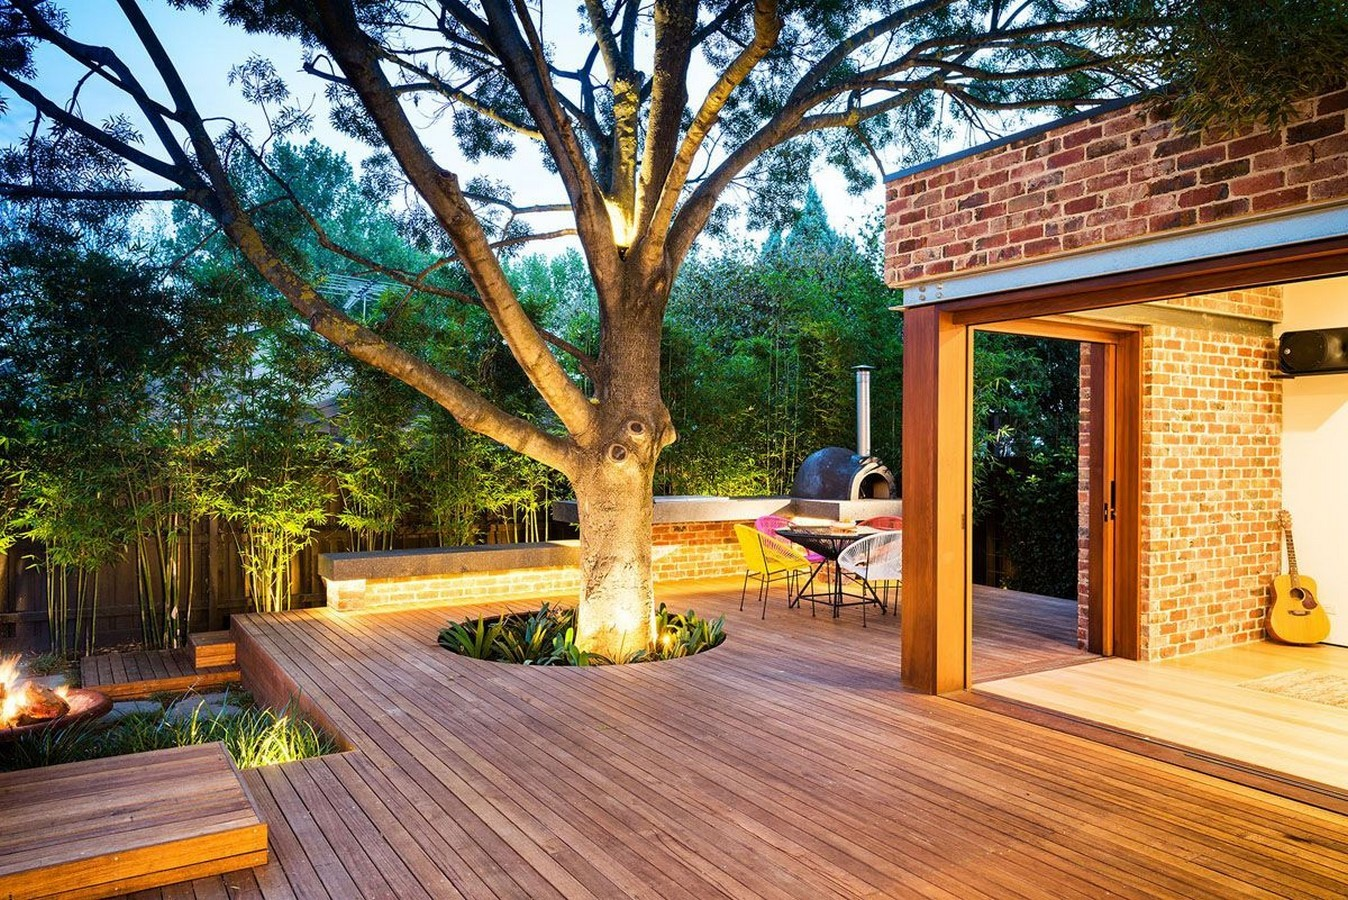 50 Ideas and Tips for Landscaping - Sheet40